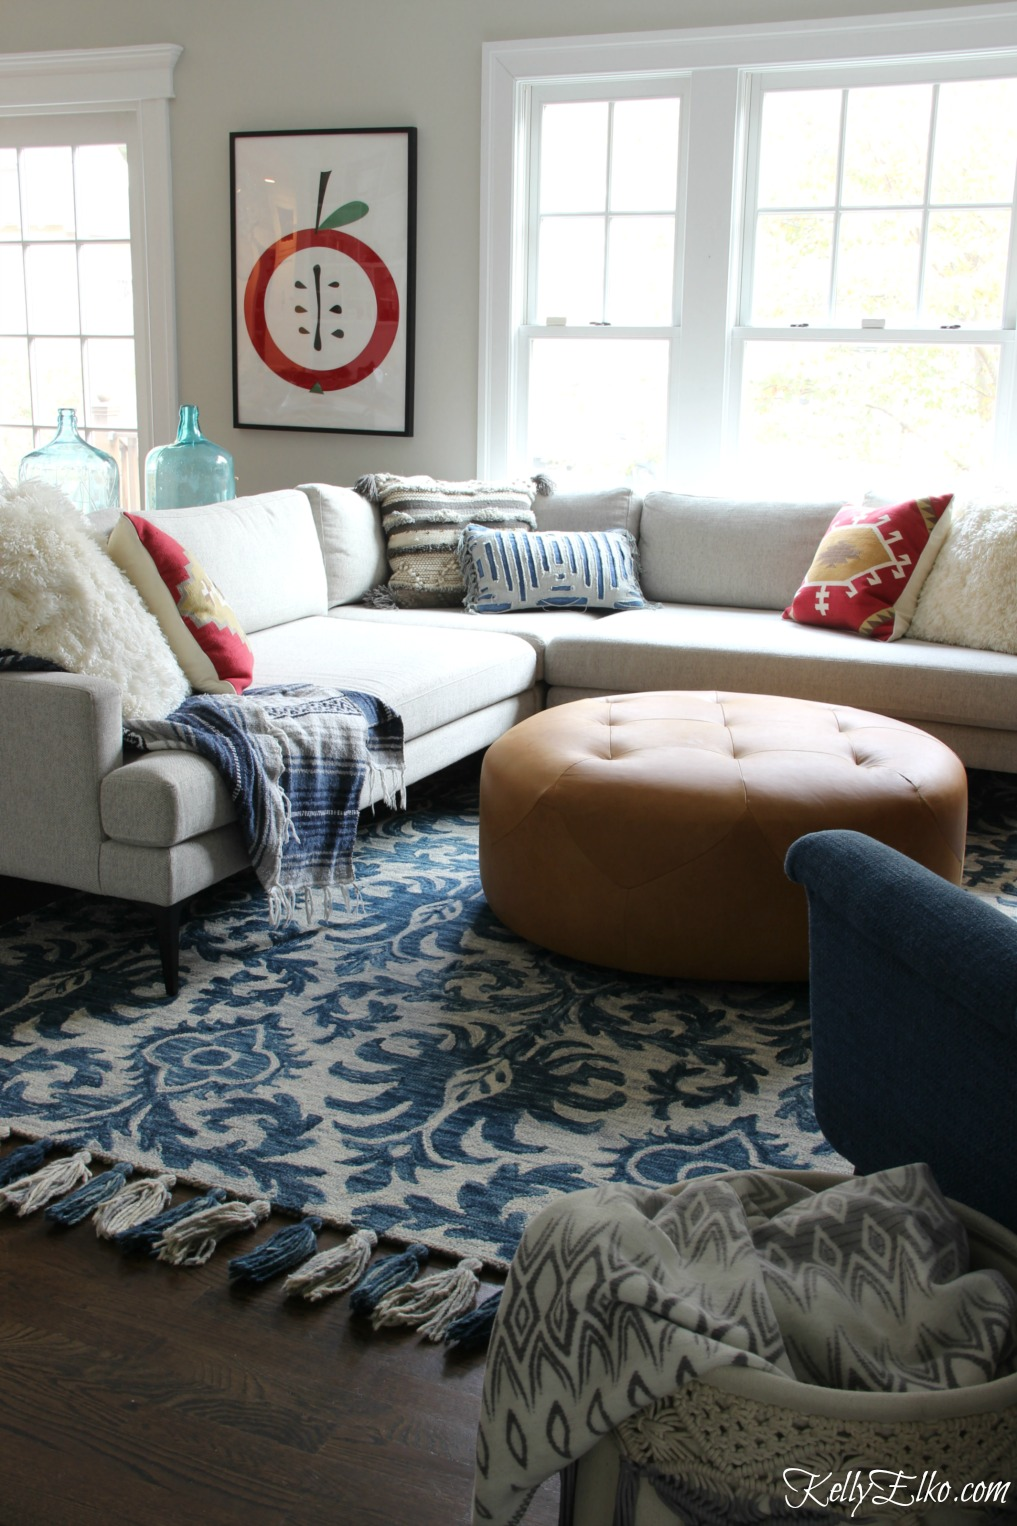 Cozy family room with sectional sofa, blue Loloi tassel rug and red pillows kellyelko.com #familyroom #sectional #homedecor #boho